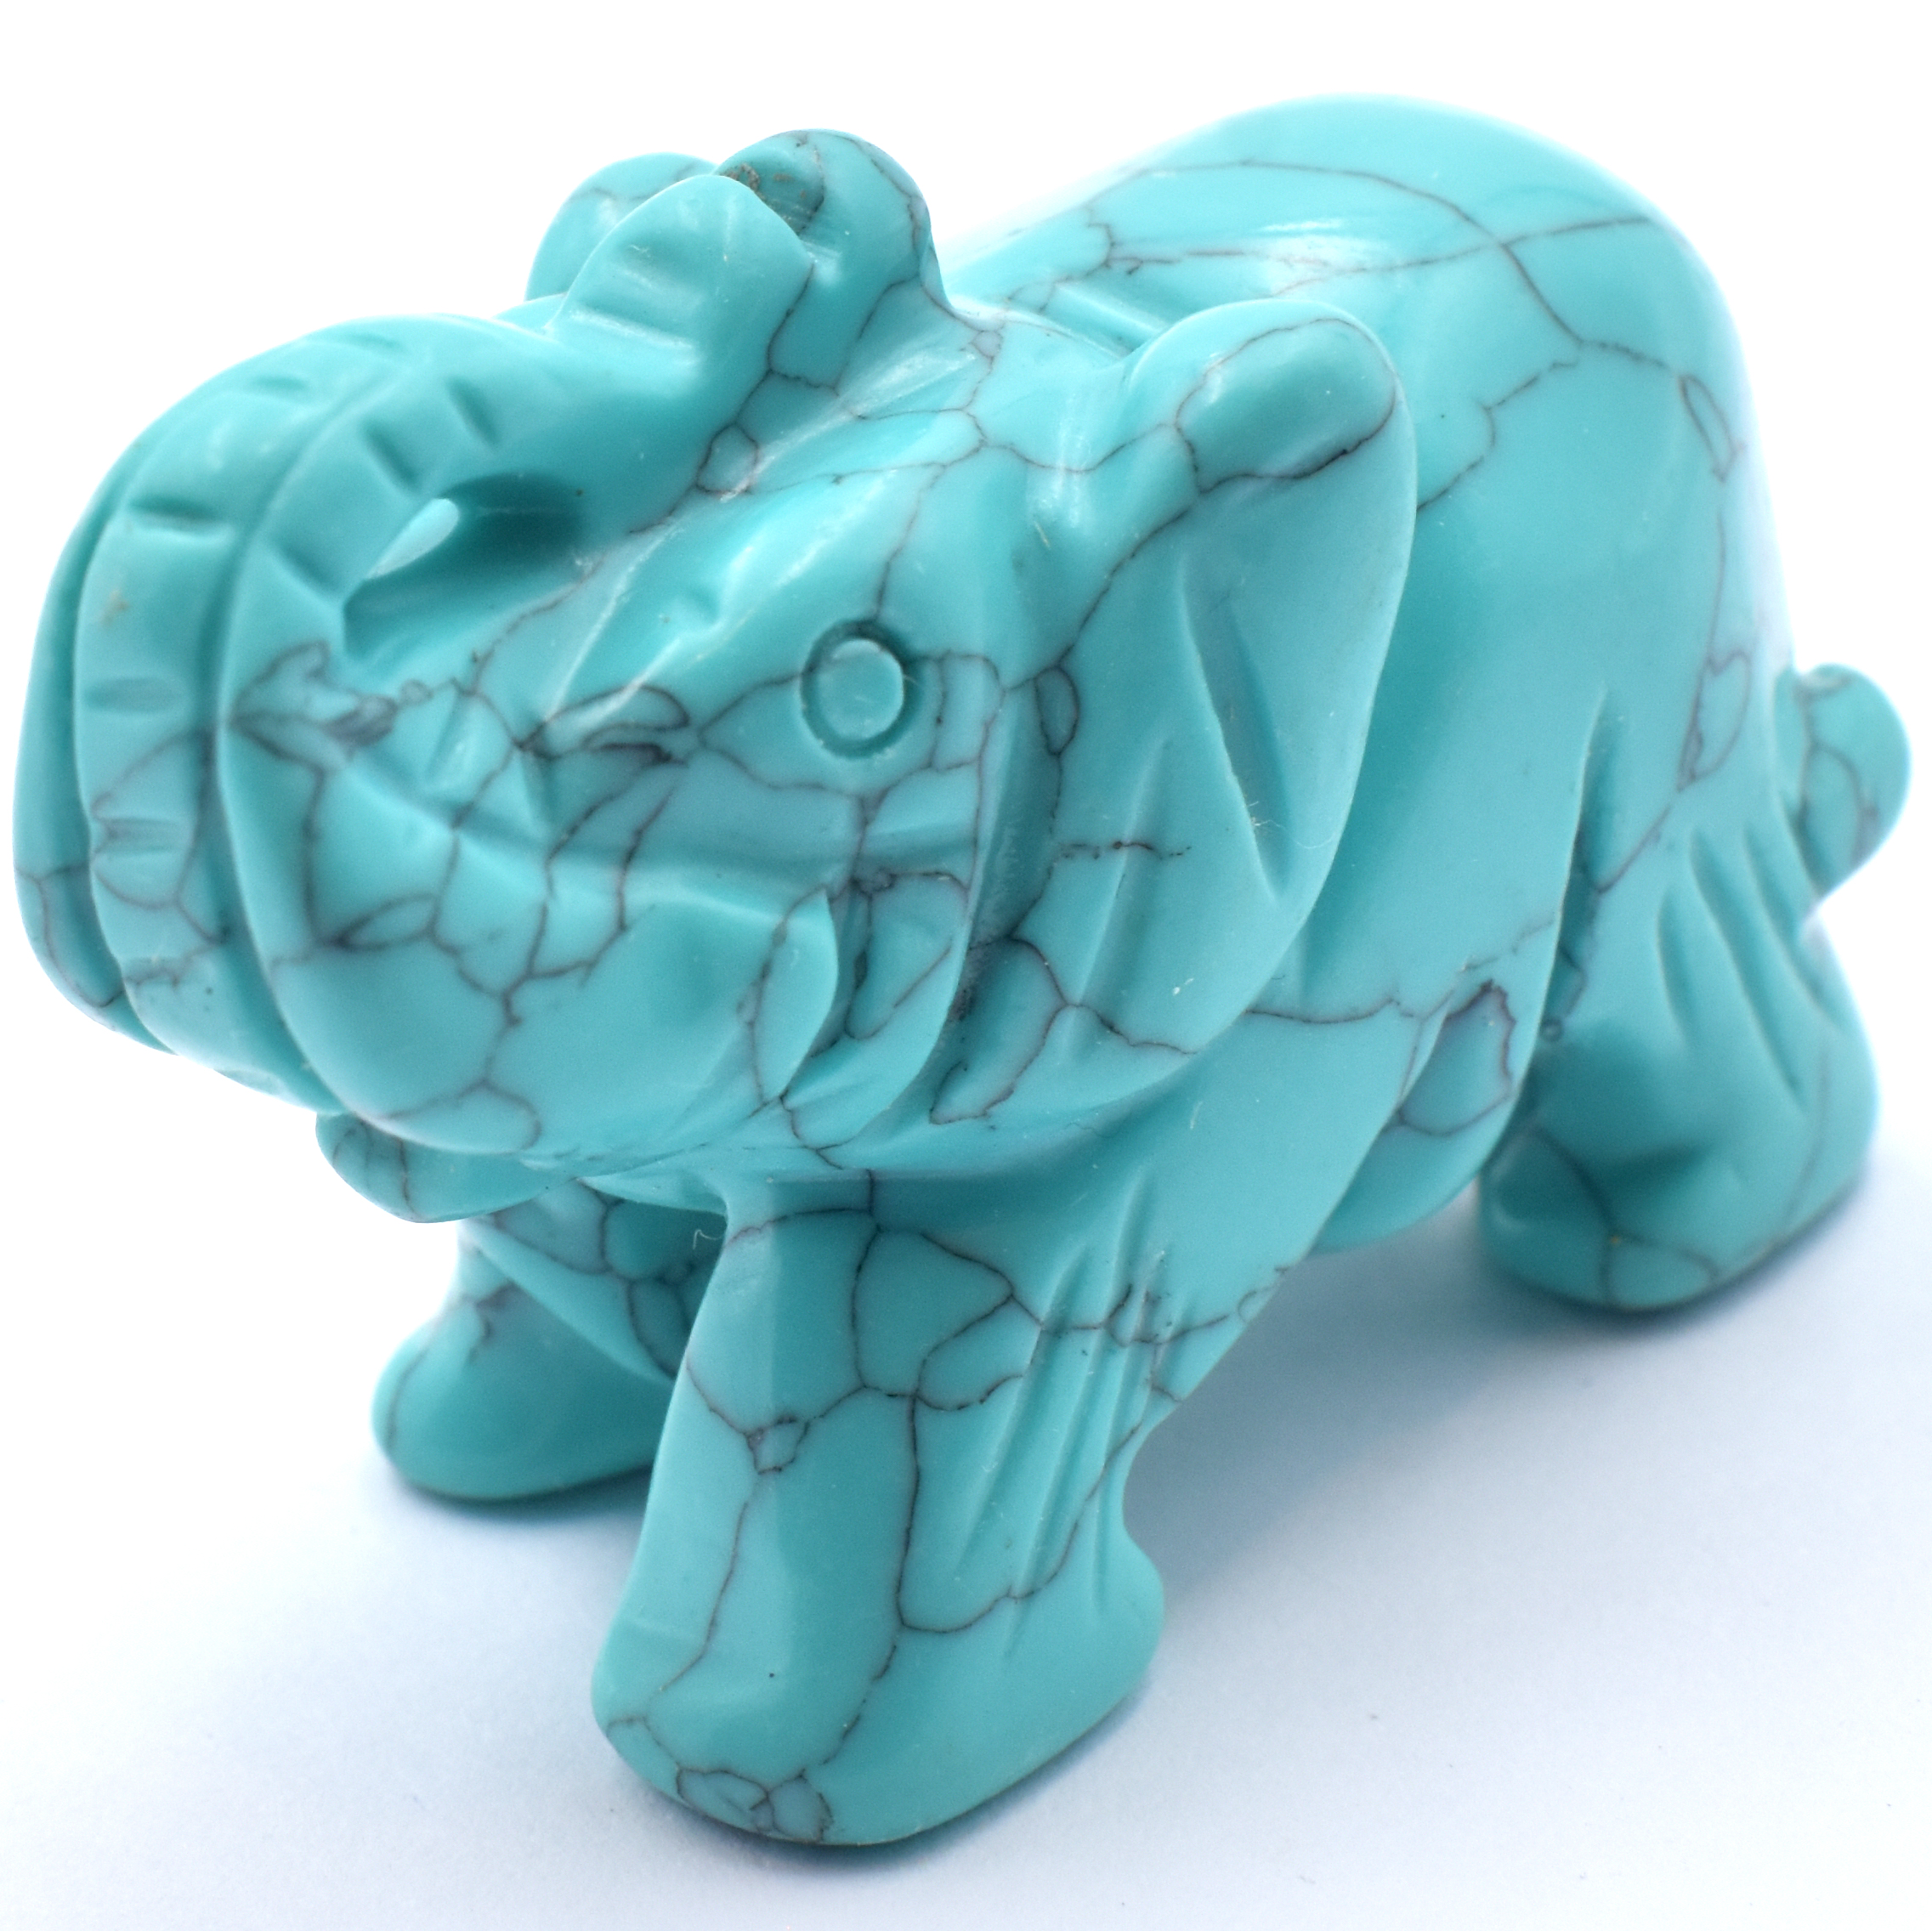 Howlite Turquoise Crystal Carving Elephants